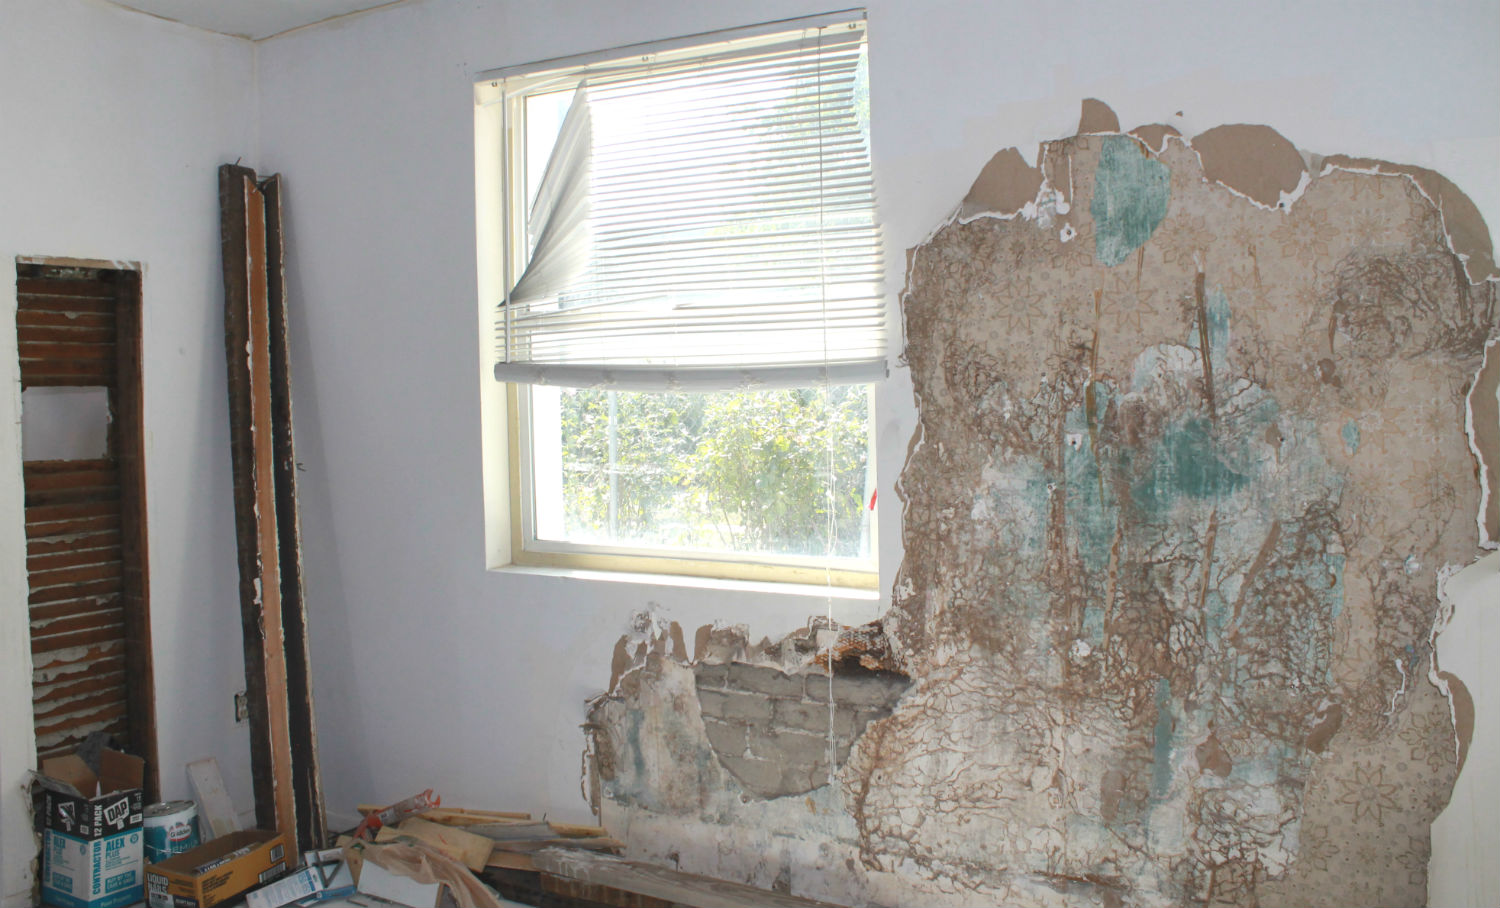 Merritt Island Rental Property Being Restored After Mold Remediation Services